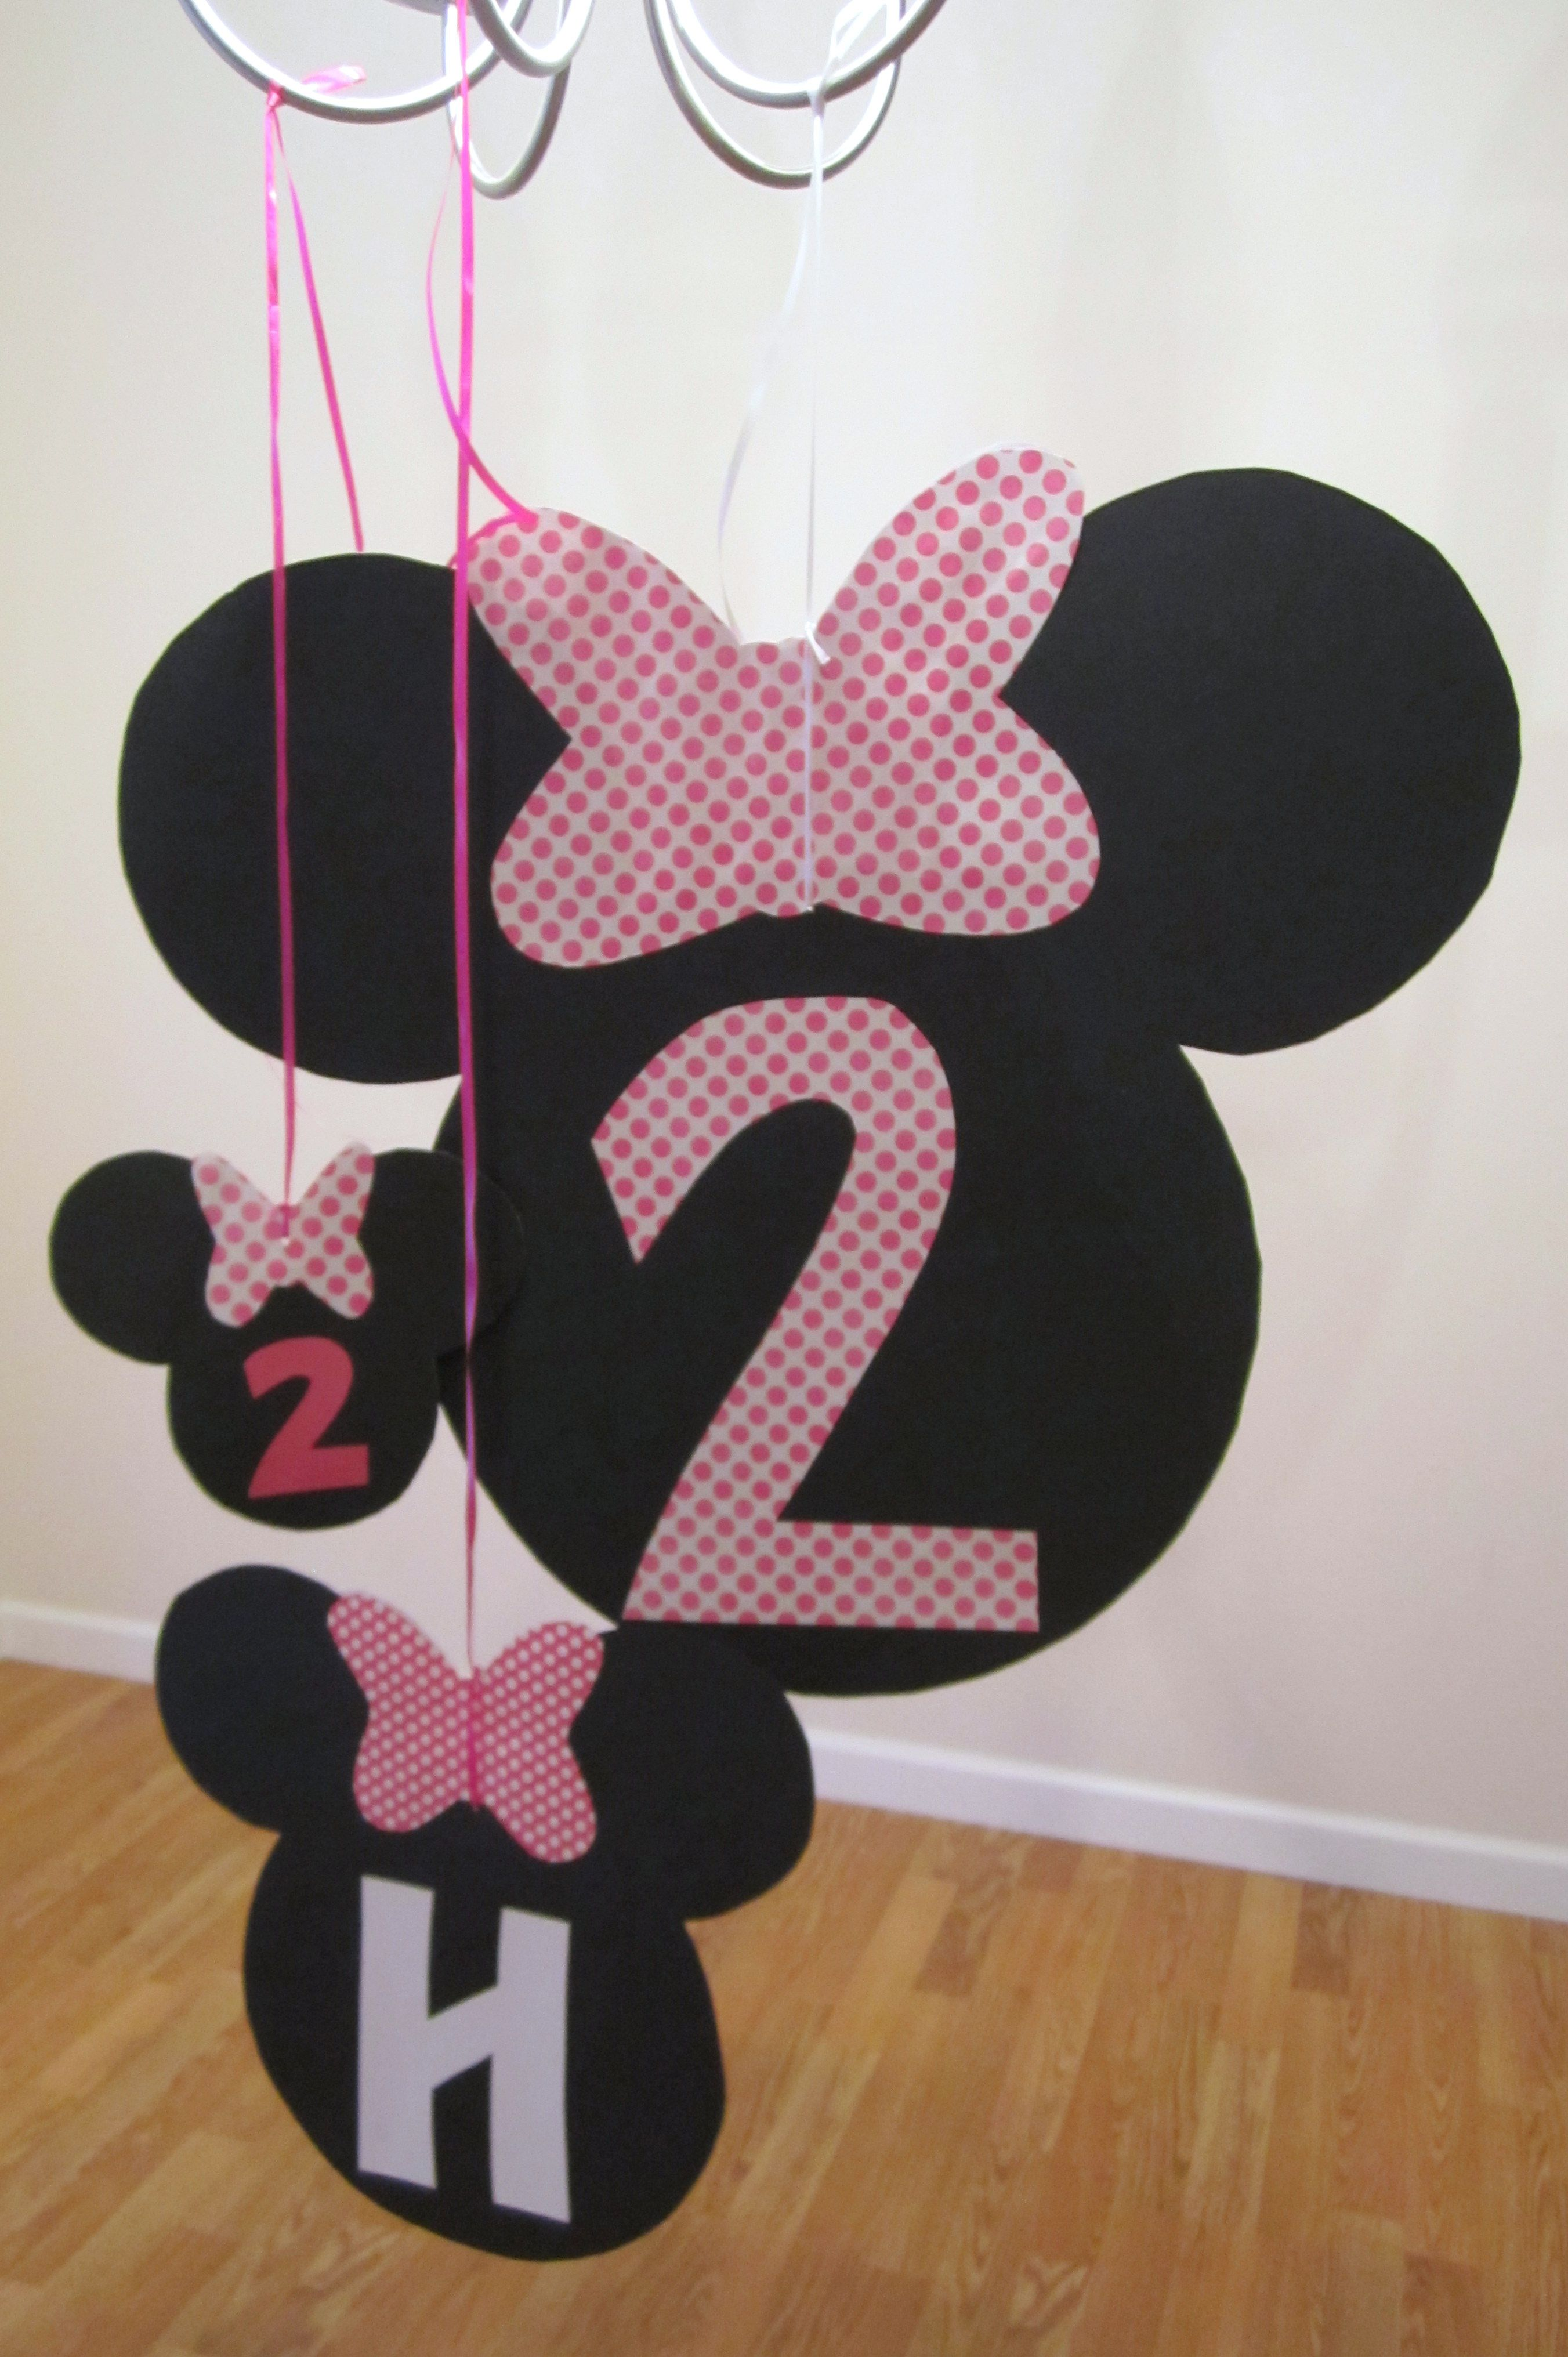 How to make scrapbook decorations - Minnie Mouse Hanging Decorations Under 1 Each To Make Scrapbook Paper